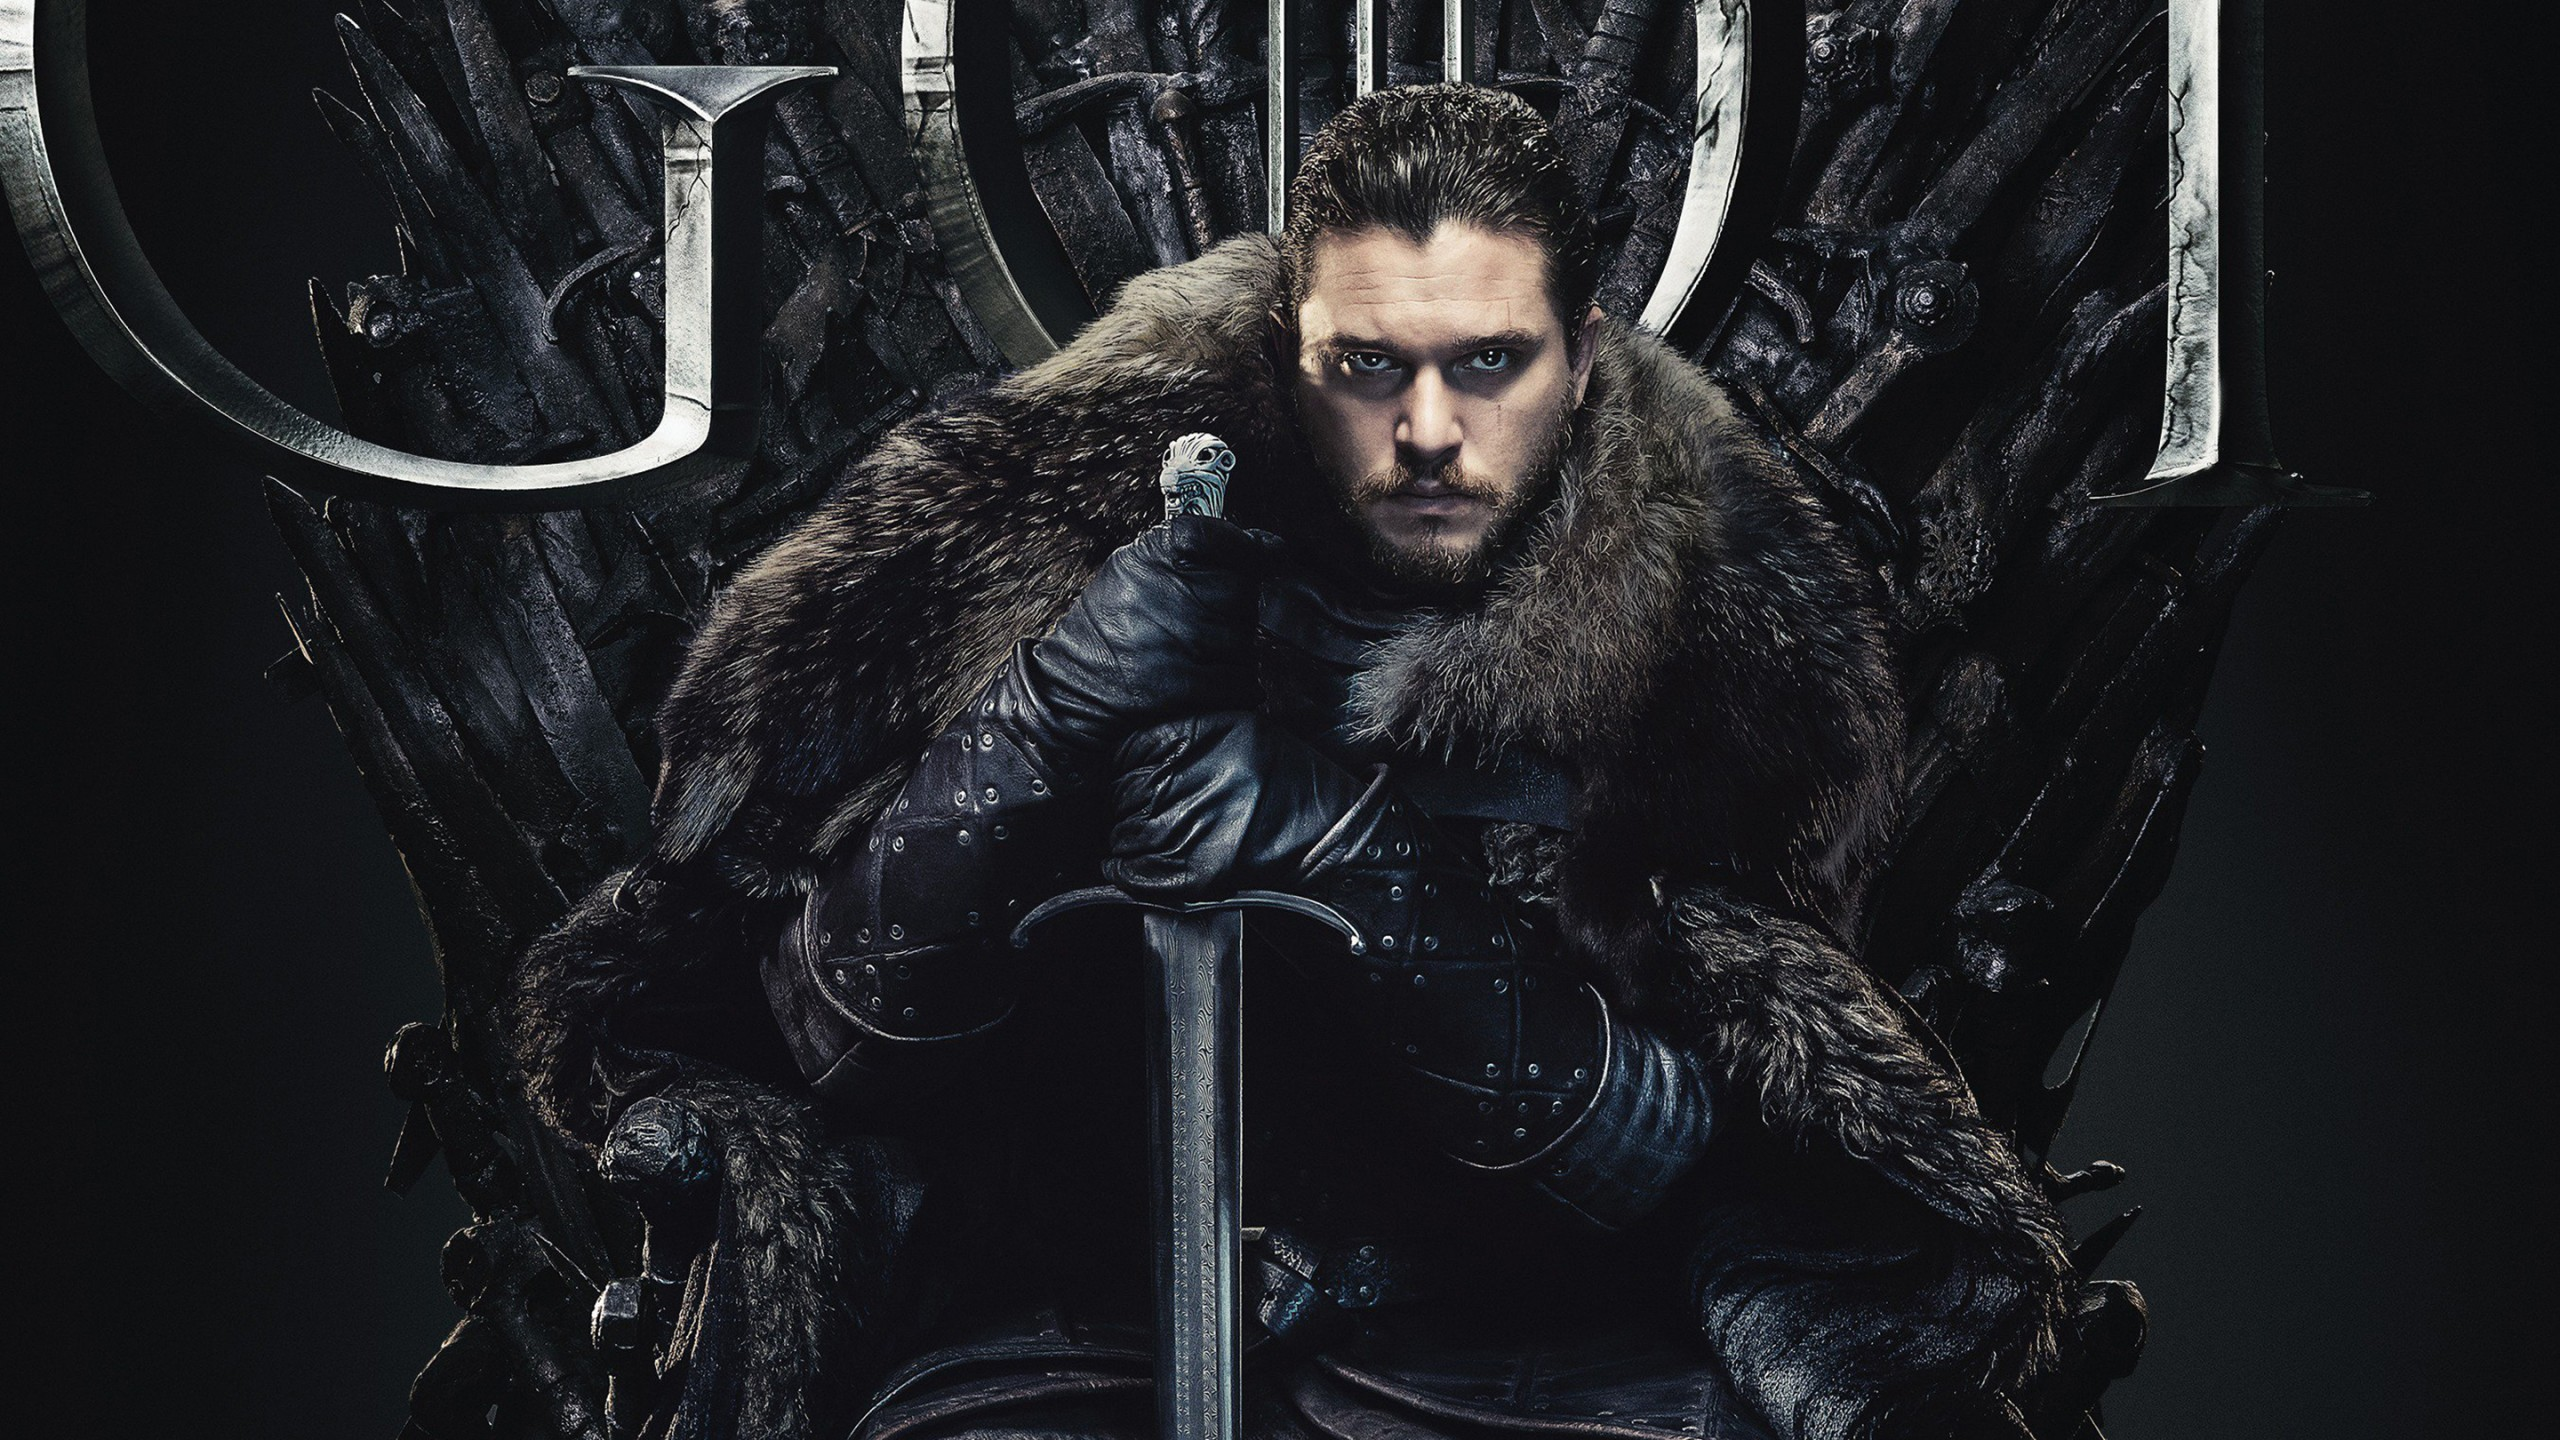 A picture of actor Kit Harrington playing Jon Snow in Game of Thrones, he sits on the throne of swords clad in leather and fur holding a sword and staring at the camera with a stealy look in his dark eyes.